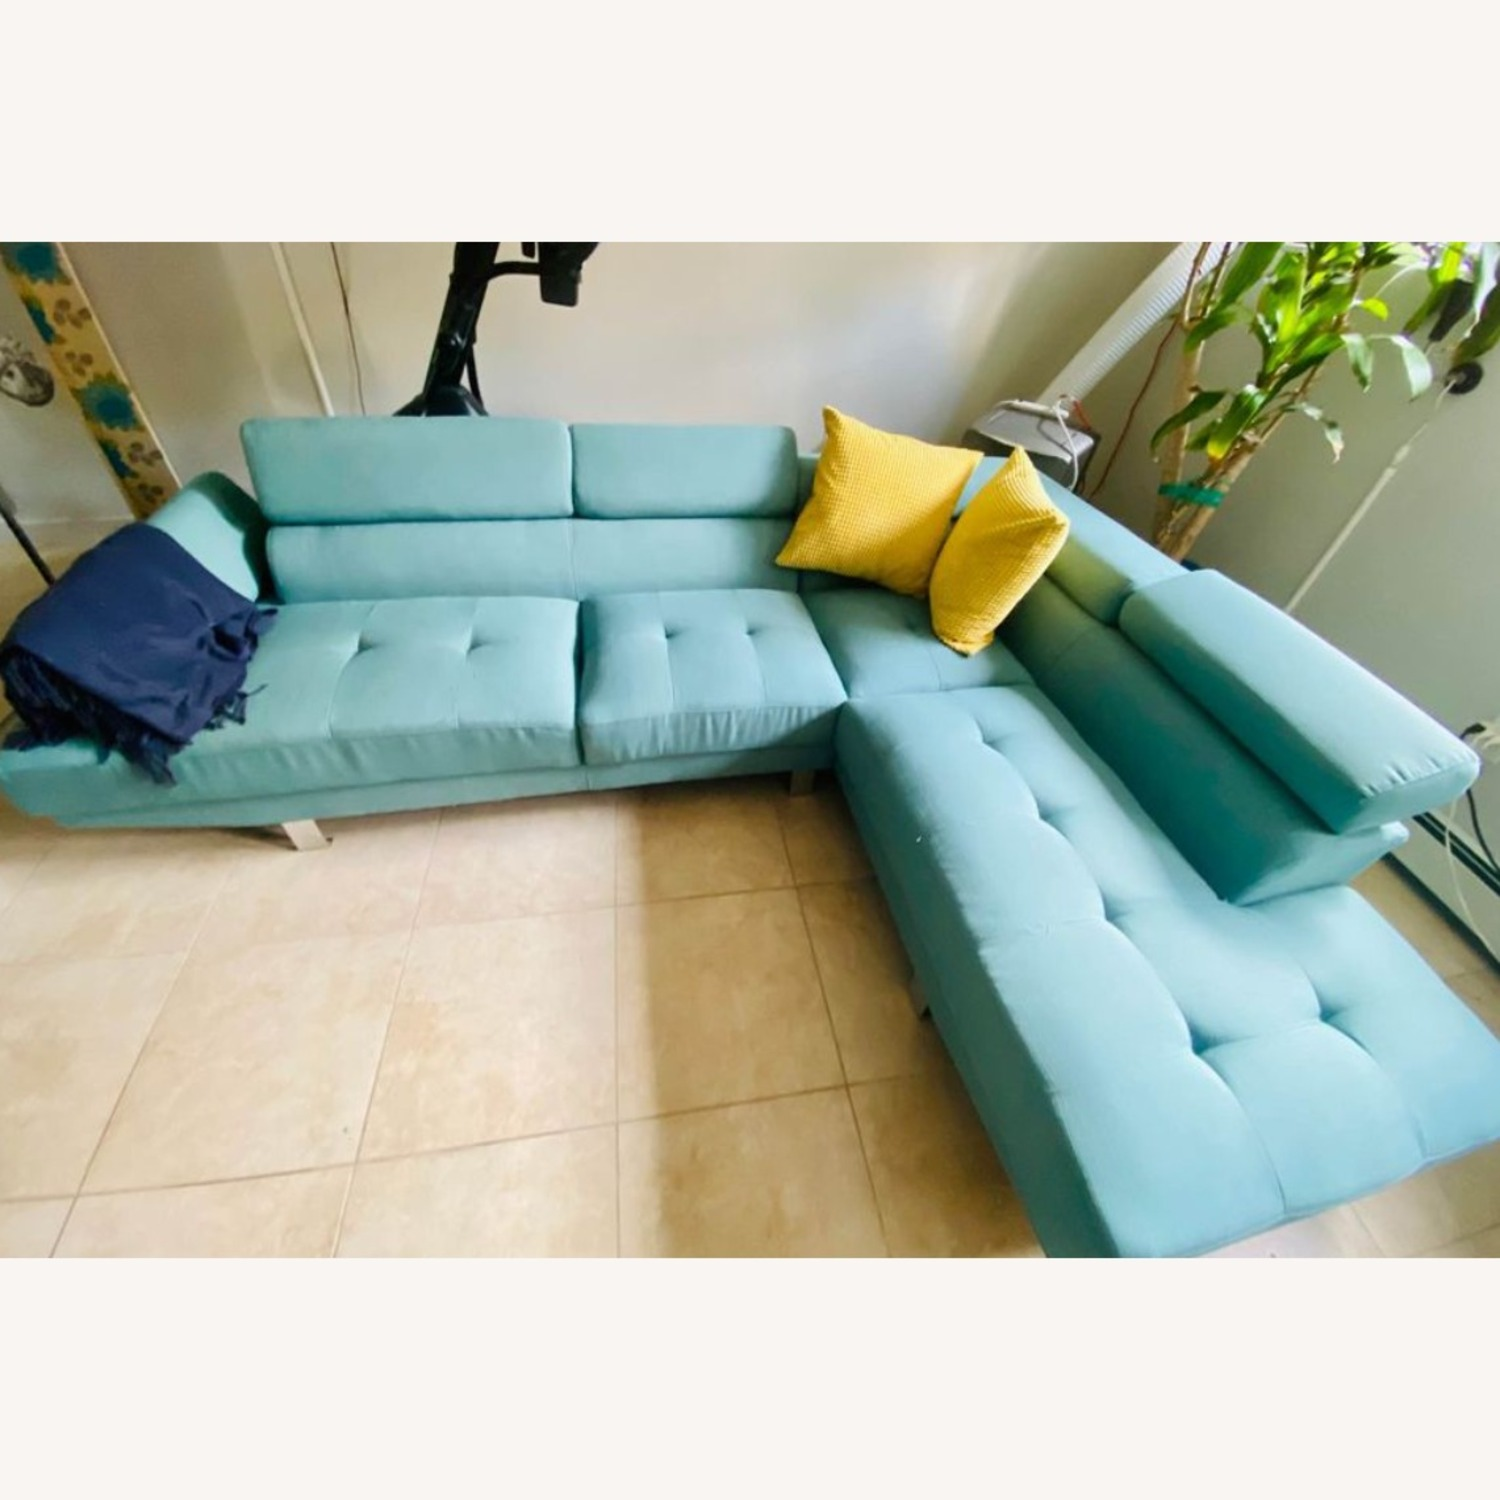 Wayfair Sectional Couch - image-1